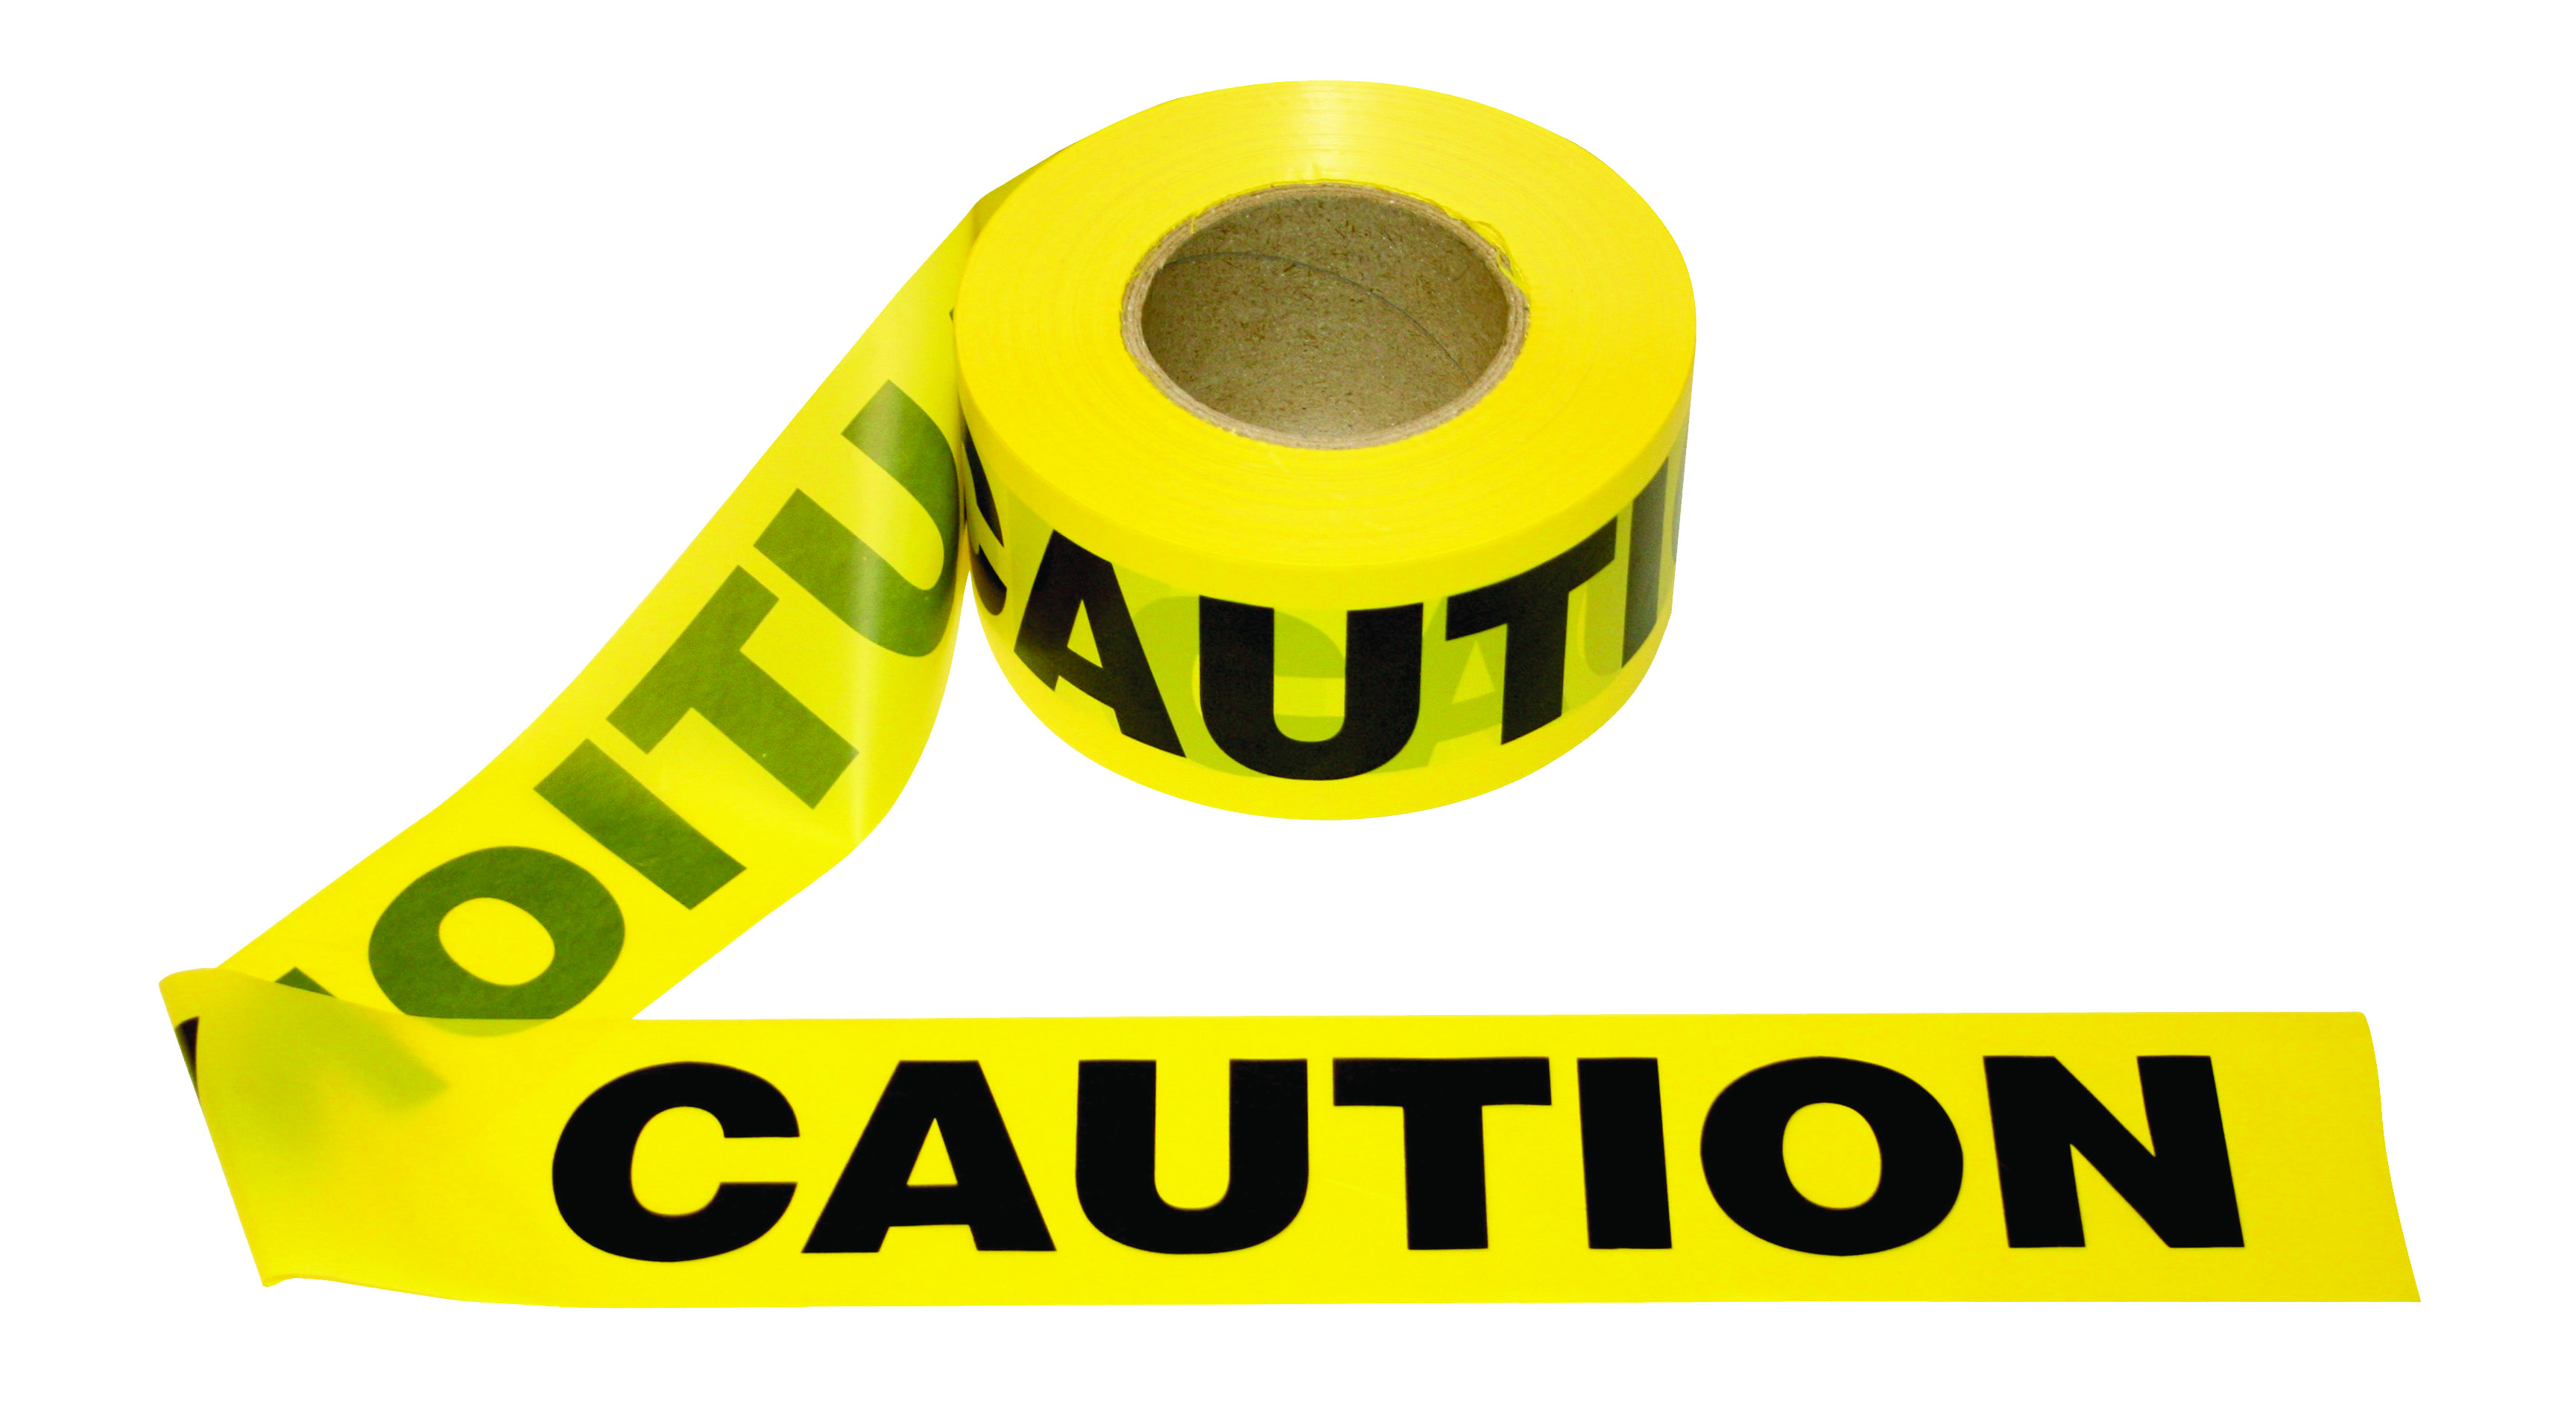 T15101 - Barricade Tape CAUTION-1.5 Mil, CAUTION -----UOM: 1/EA